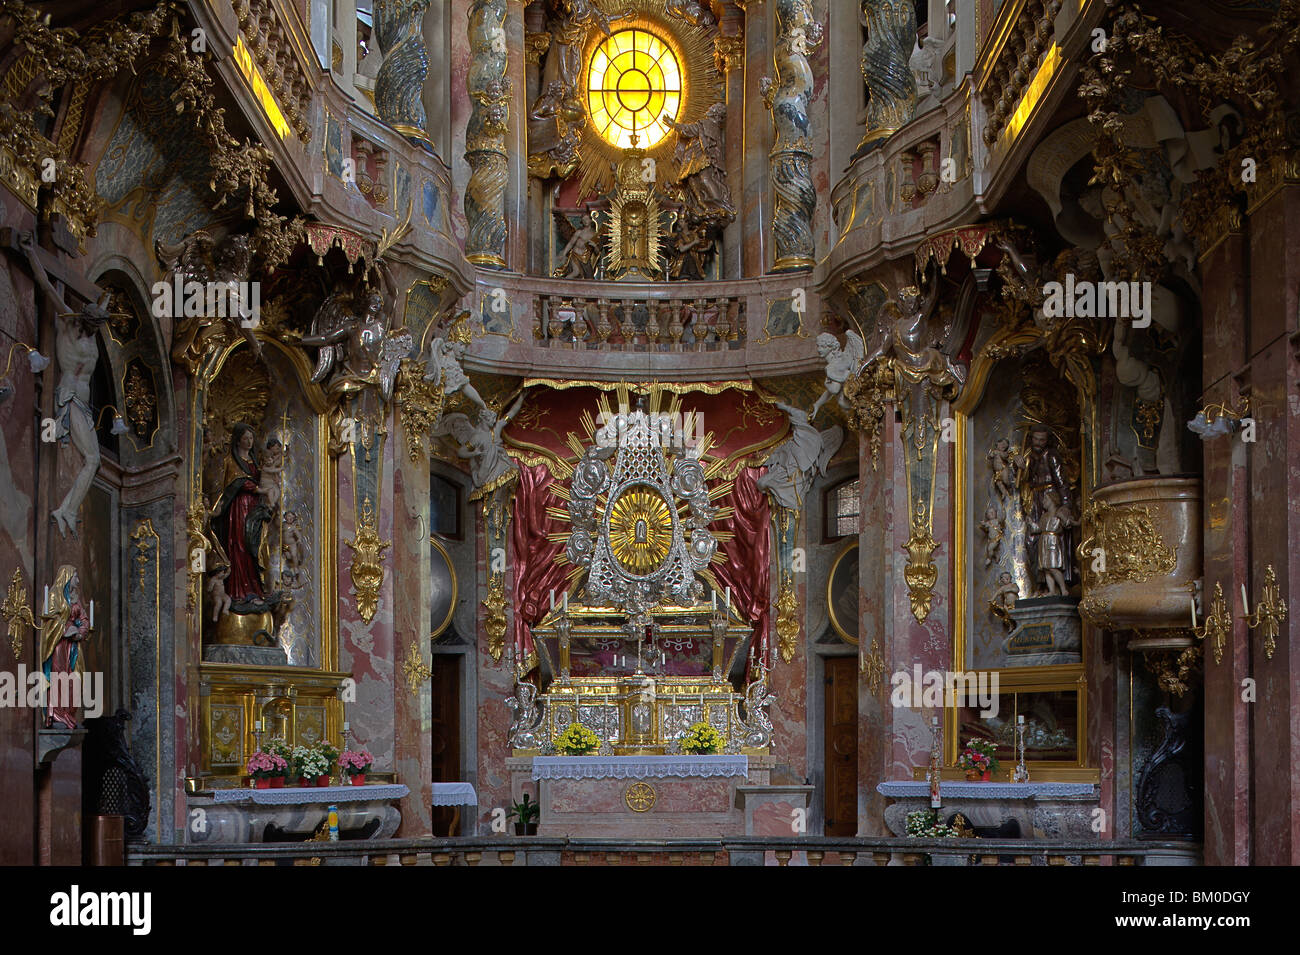 Interior view of the Asam church, Asamkirche, St. Johann Nepomuk was built in 1733–1746 by the Asam brothers Asam, - Stock Image